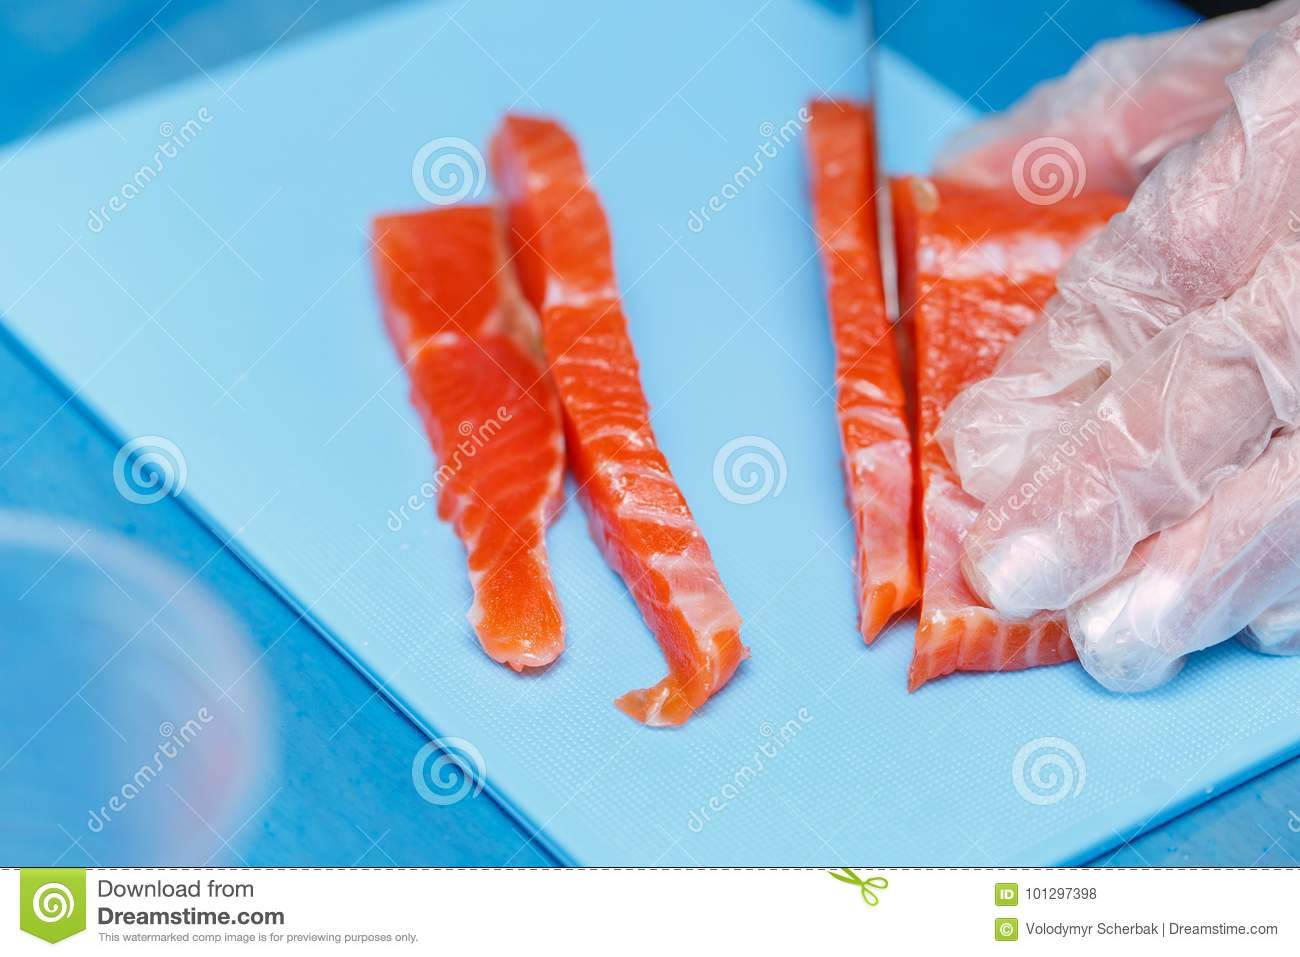 Hand With Knife Cuts Fish Raw Fish On Cooking Board Salmon Meat